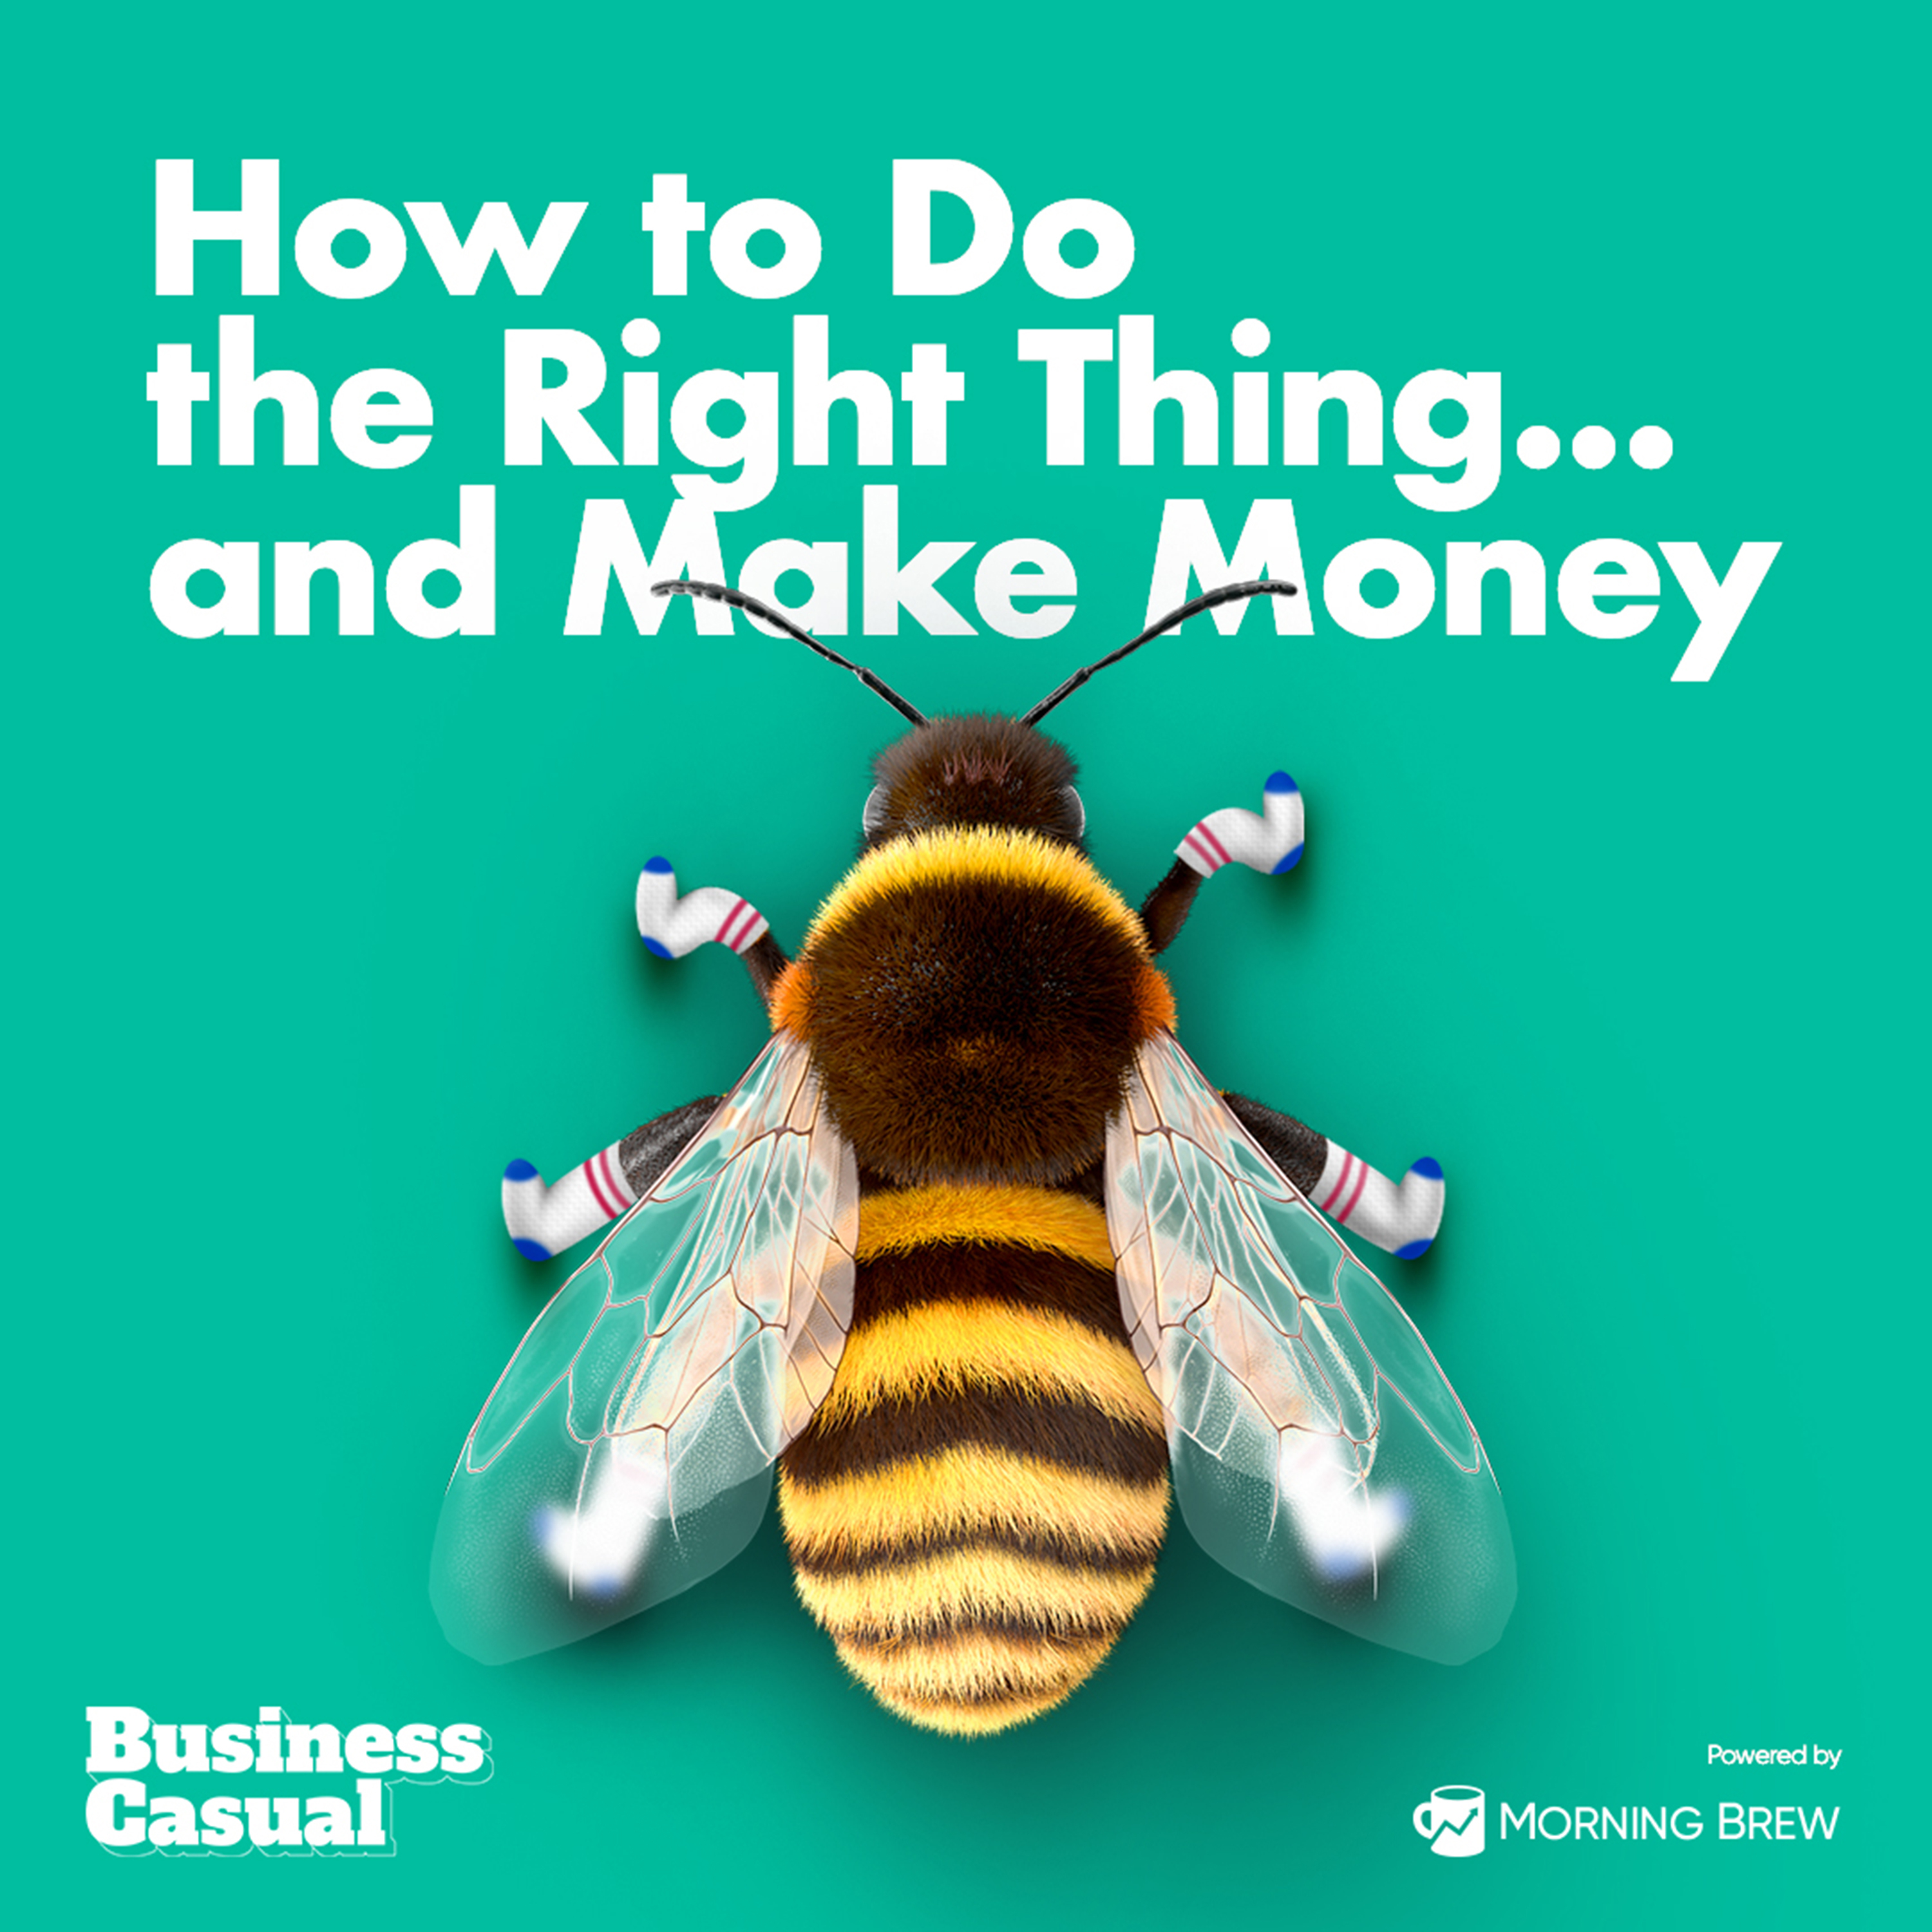 How to Do the Right Thing...and Make Money Image